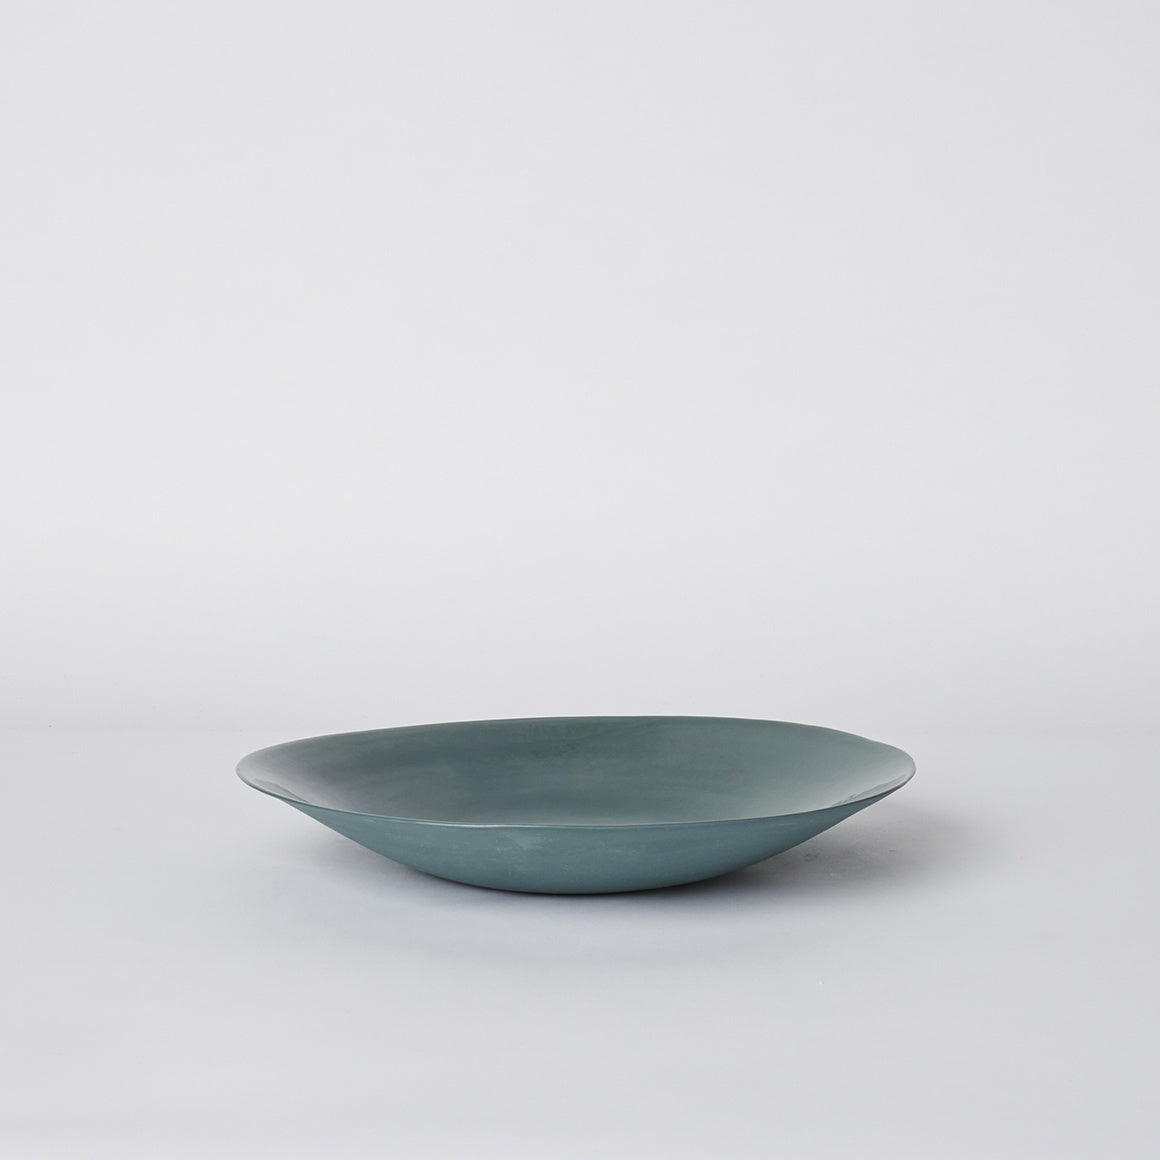 MUD AUSTRALIA-NEST BOWL - Eclectic Cool  - 2